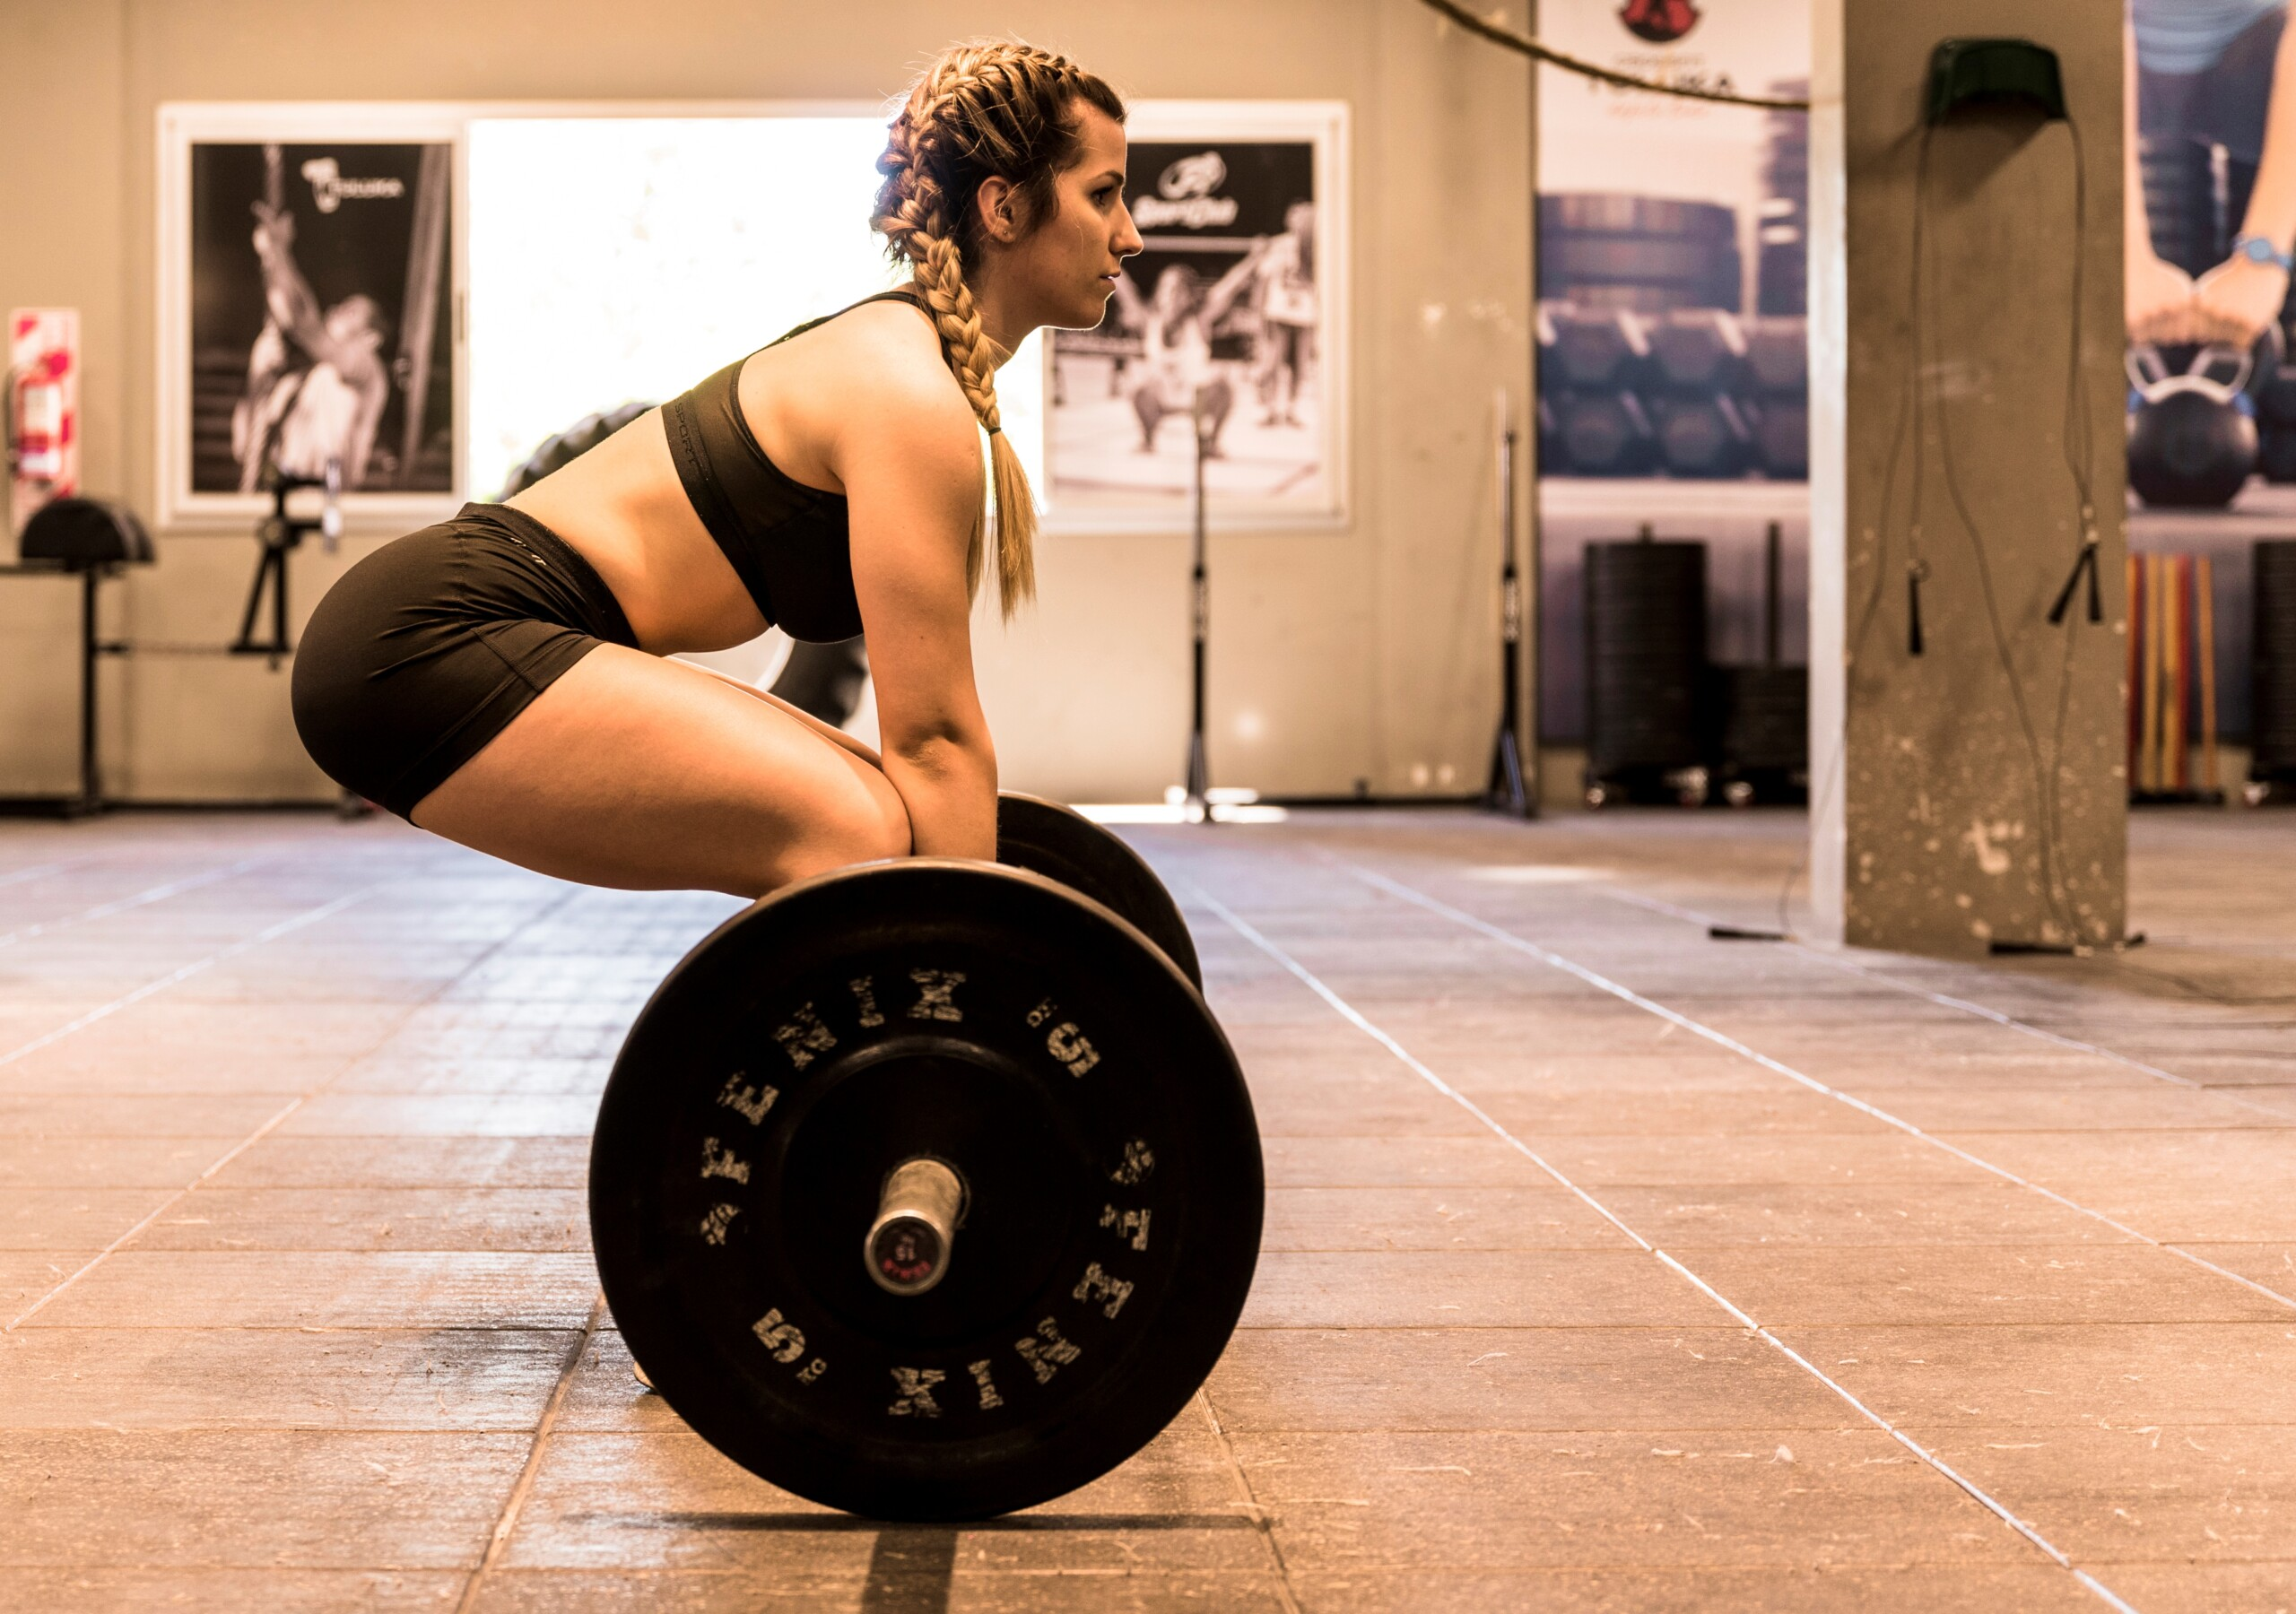 How Much Does a Double Mastectomy Affect the Deadlift?